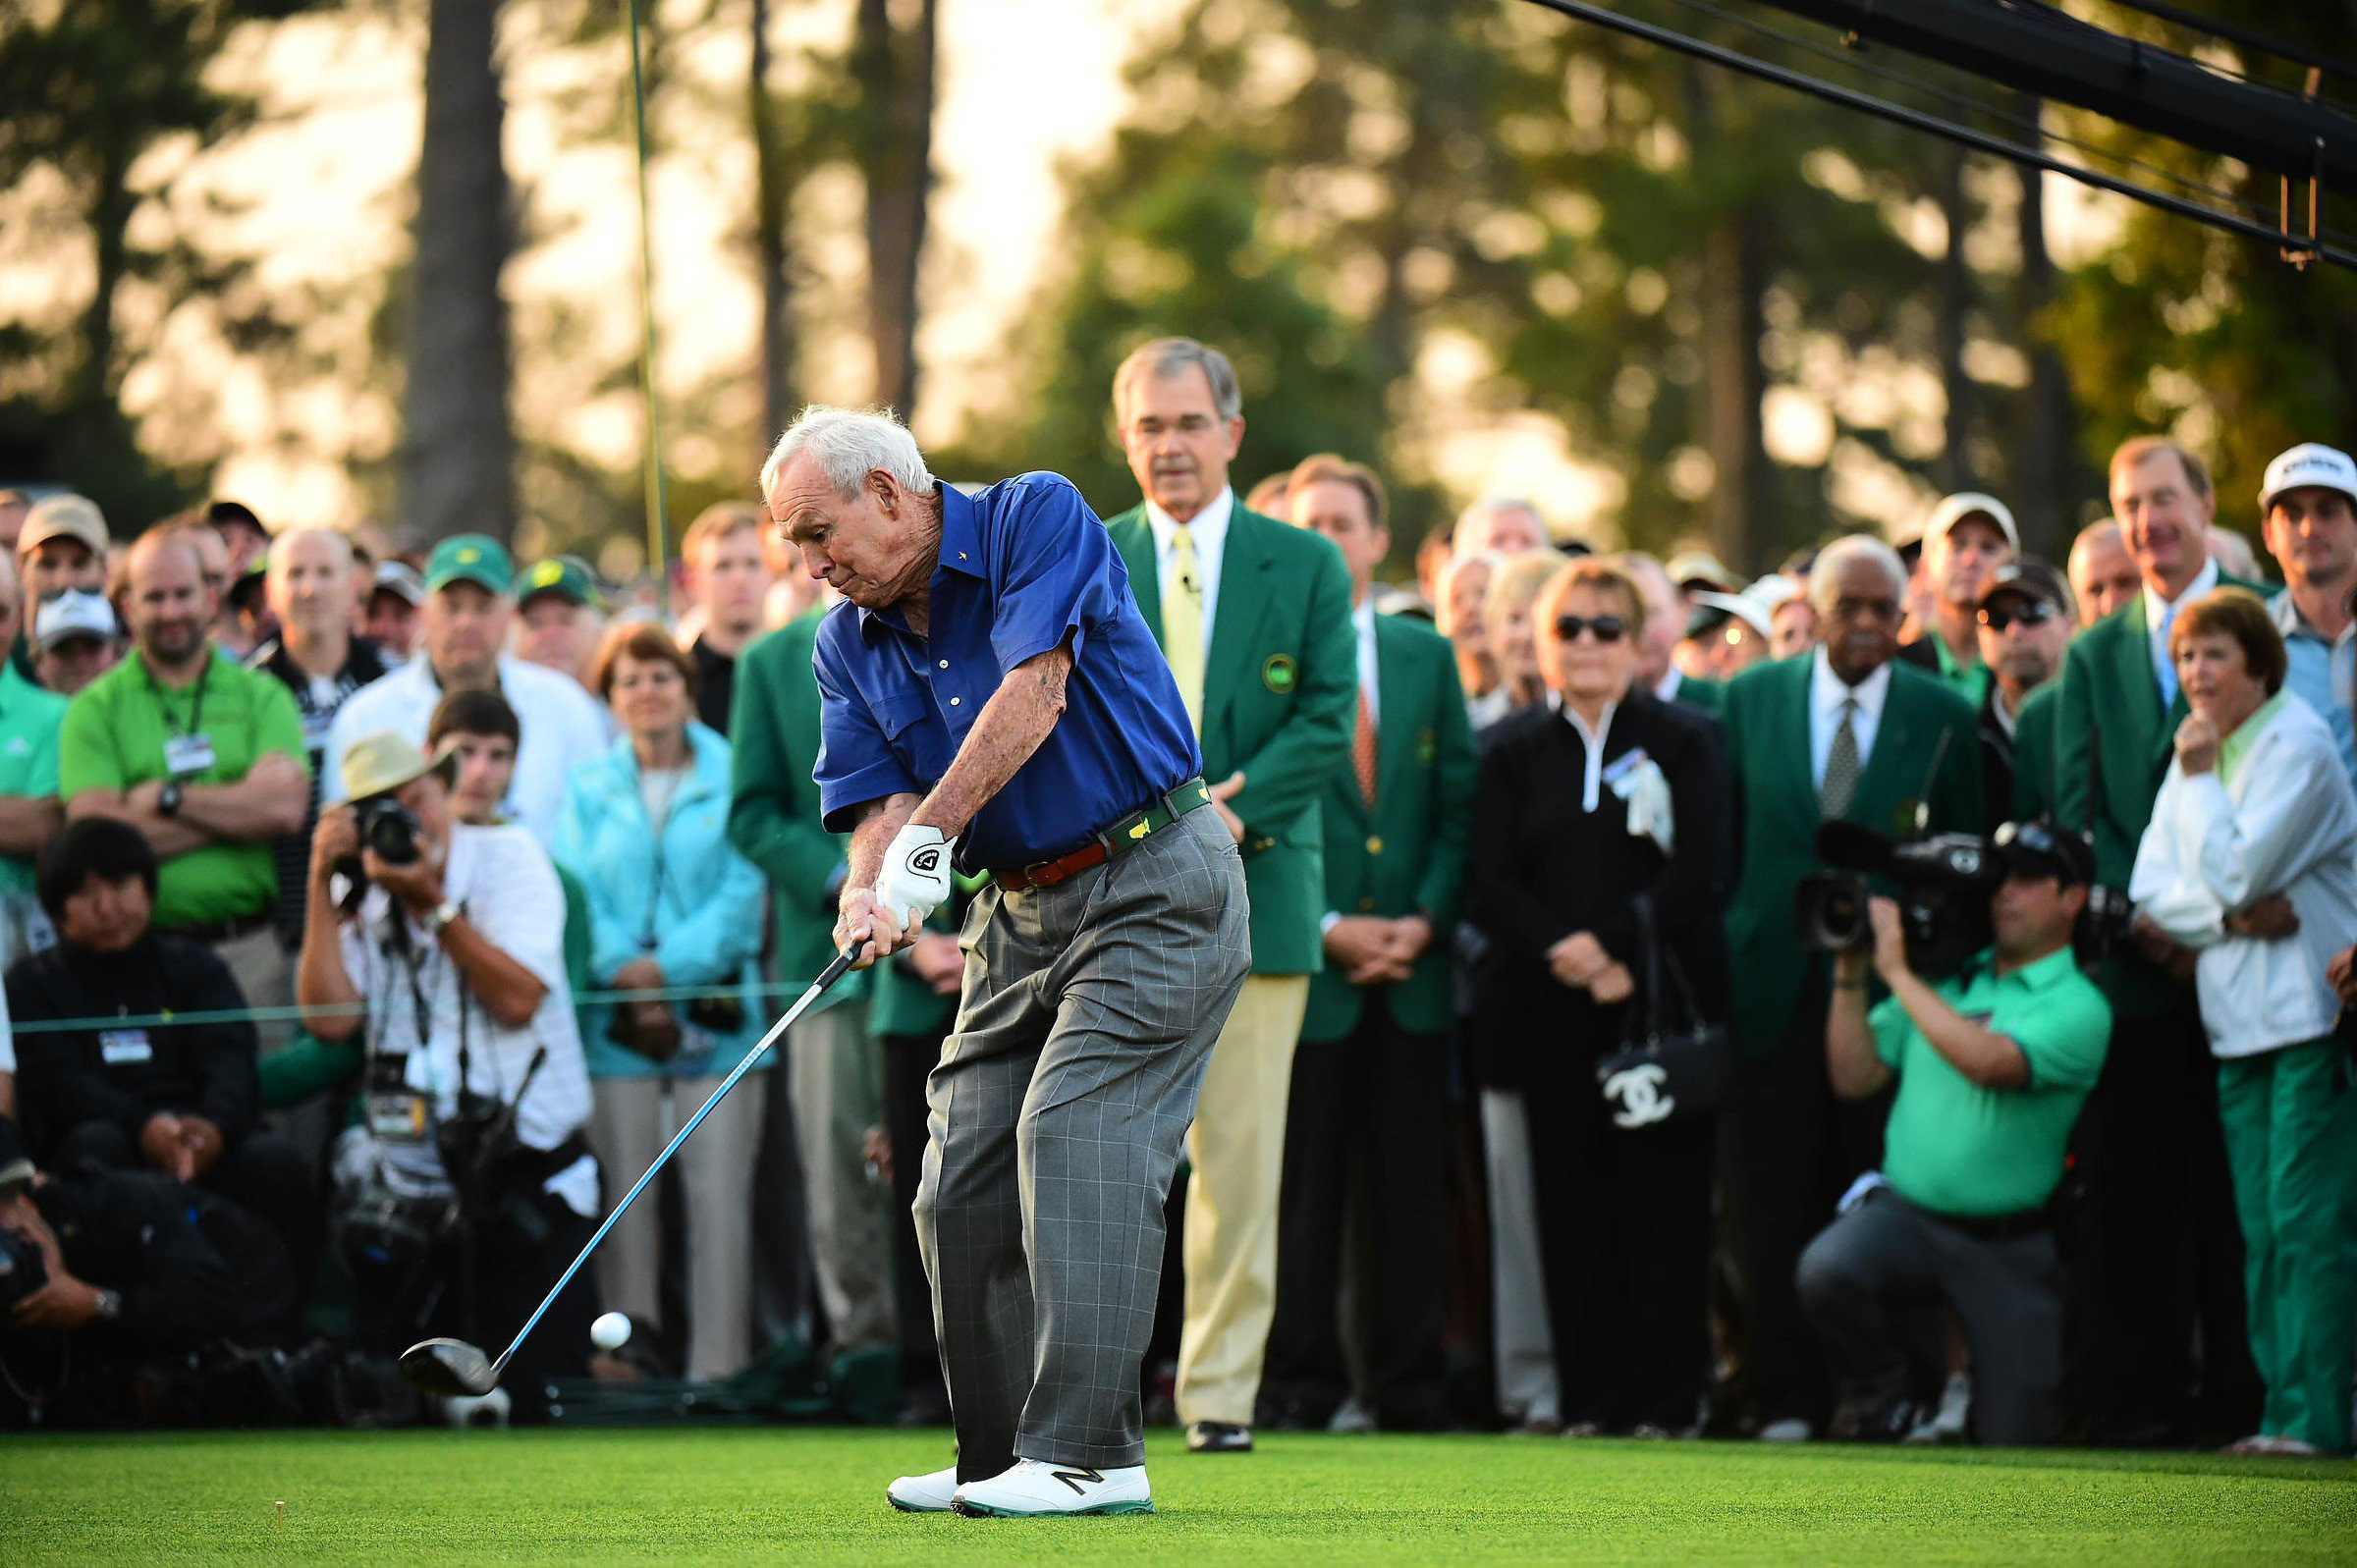 Arnold Palmer hits his tee shot at the 2015 Masters.